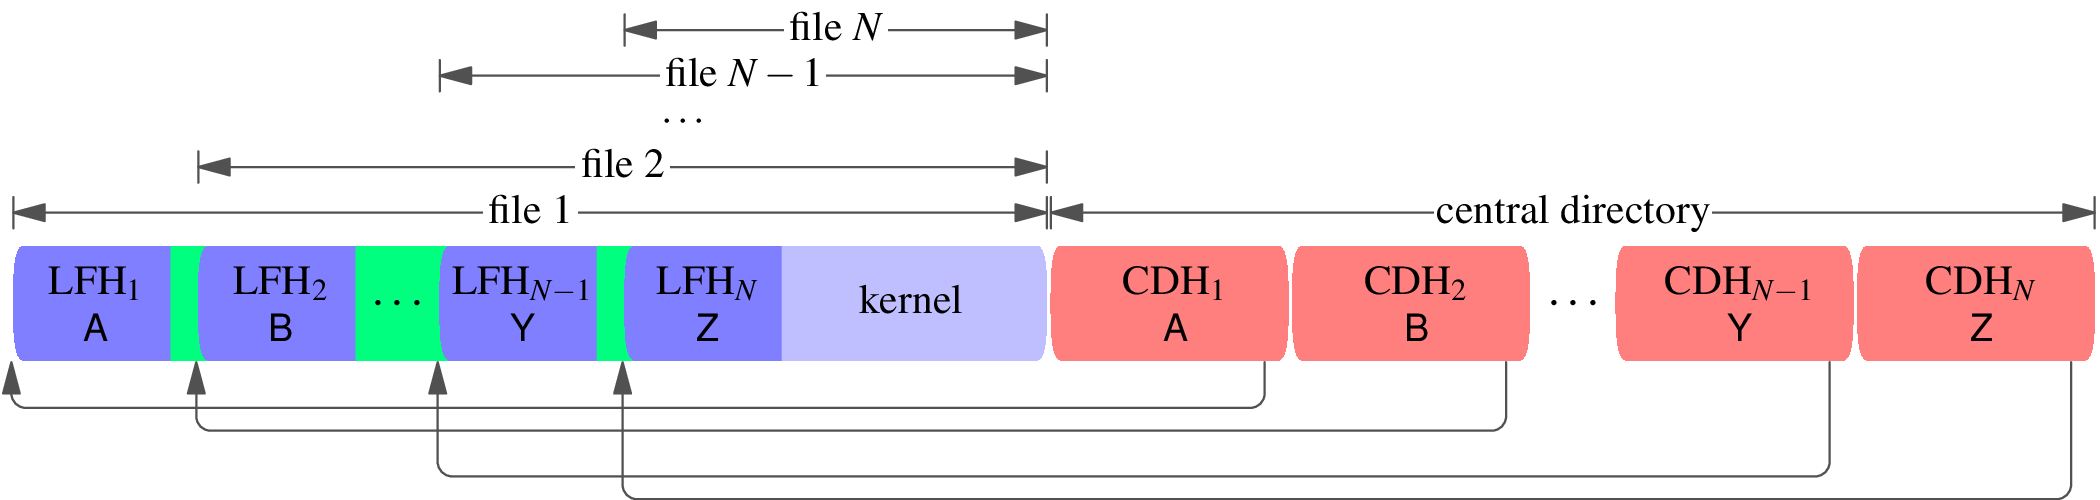 A block diagram of a zip file with quoted local file headers. The central directory header consists of central directory headers CDH[1], CDH[2], ..., CDH[N−1], CDH[N], with filenames A, B, ..., Y, Z. The central directory headers point to corresponding local file headers LFH[1], LFH[2], ..., LFH[N−1], LFH[N] with filenames A, B, ..., Y, Z. The files are drawn and labeled to show that file 1 does not end before file 2 begins; rather file 1 contains file 2, file 2 contains file 3, and so on. There is a small green-colored space between LFH[1] and LFH[2], and between LFH[2] and LFH[3], etc., to stand for quoting the following local file header using an uncompressed DEFLATE block. The file data of the final file, whose local file header is LFH[N] and whose filename is Z, does not contain any other files, only the compressed kernel.